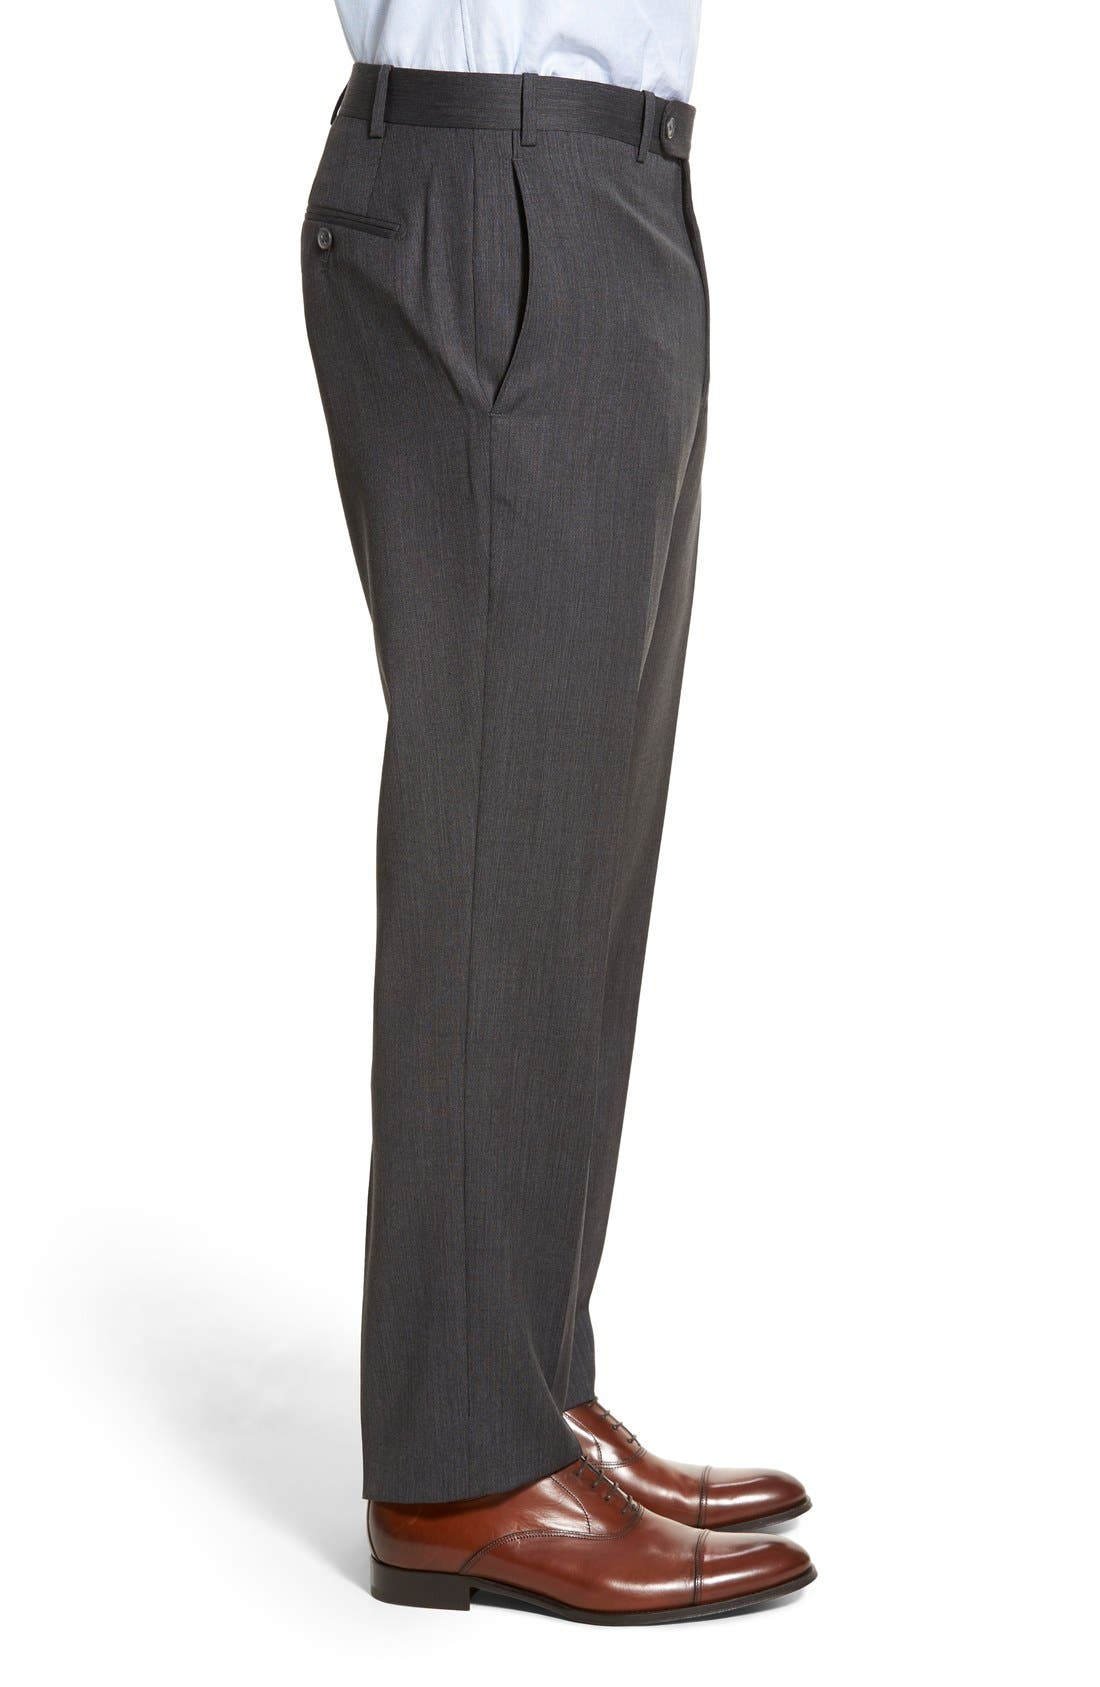 Torino Flat Front Solid Wool Trousers,                             Alternate thumbnail 2, color,                             020